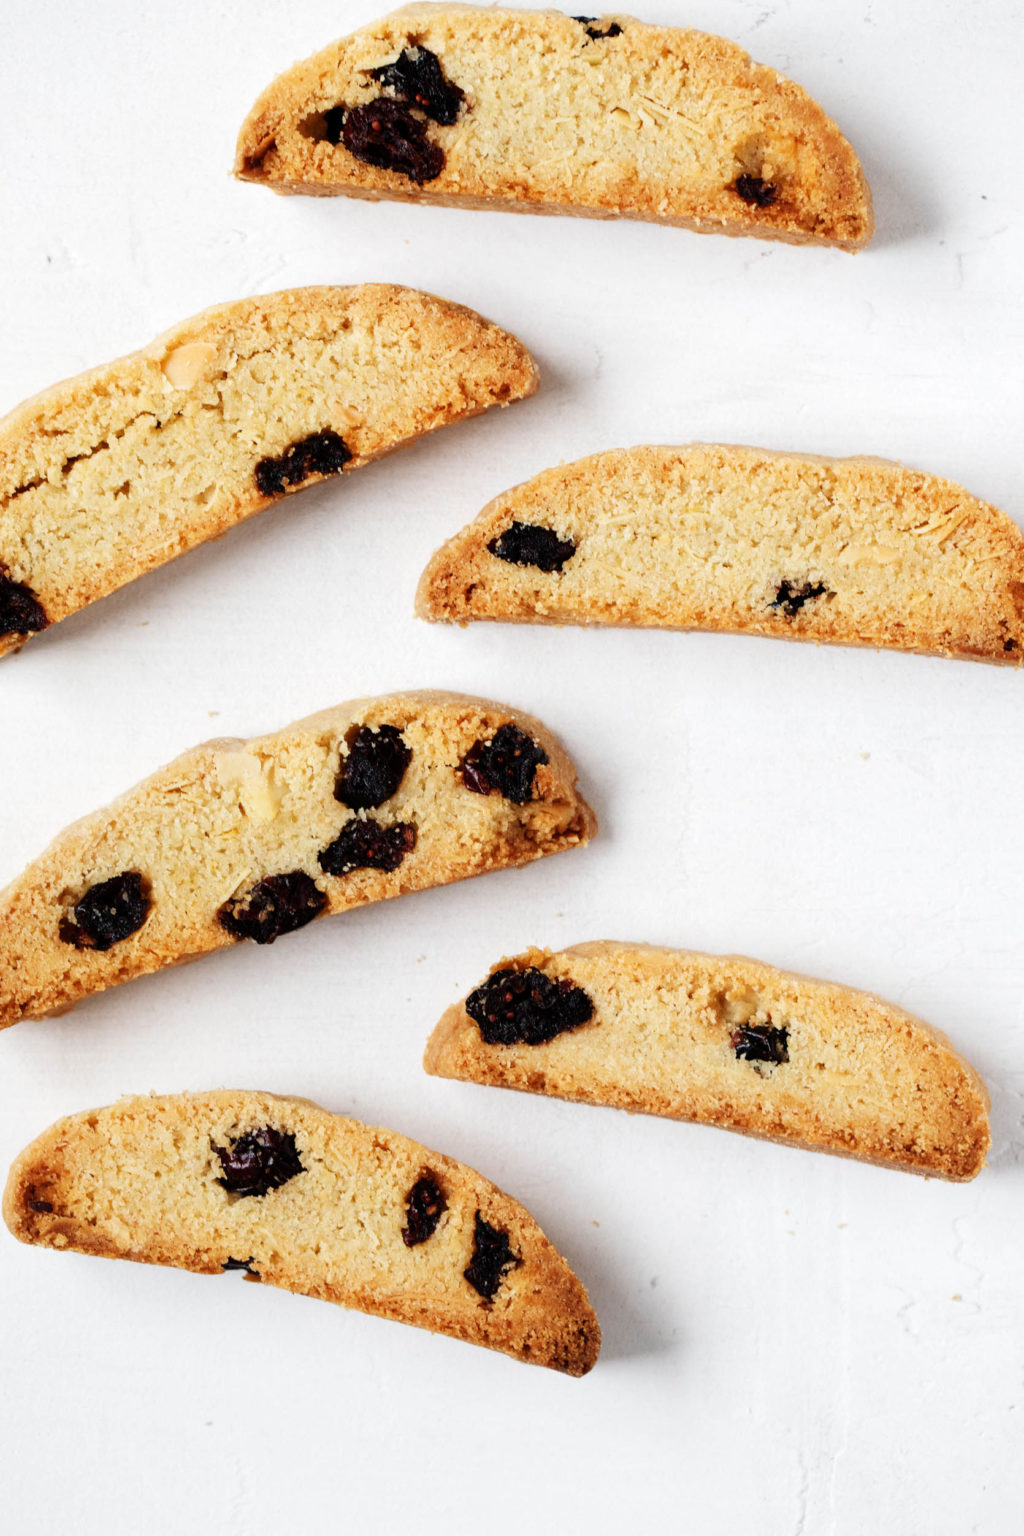 Cranberry almond biscotti cookies are laid out neatly on a white surface.